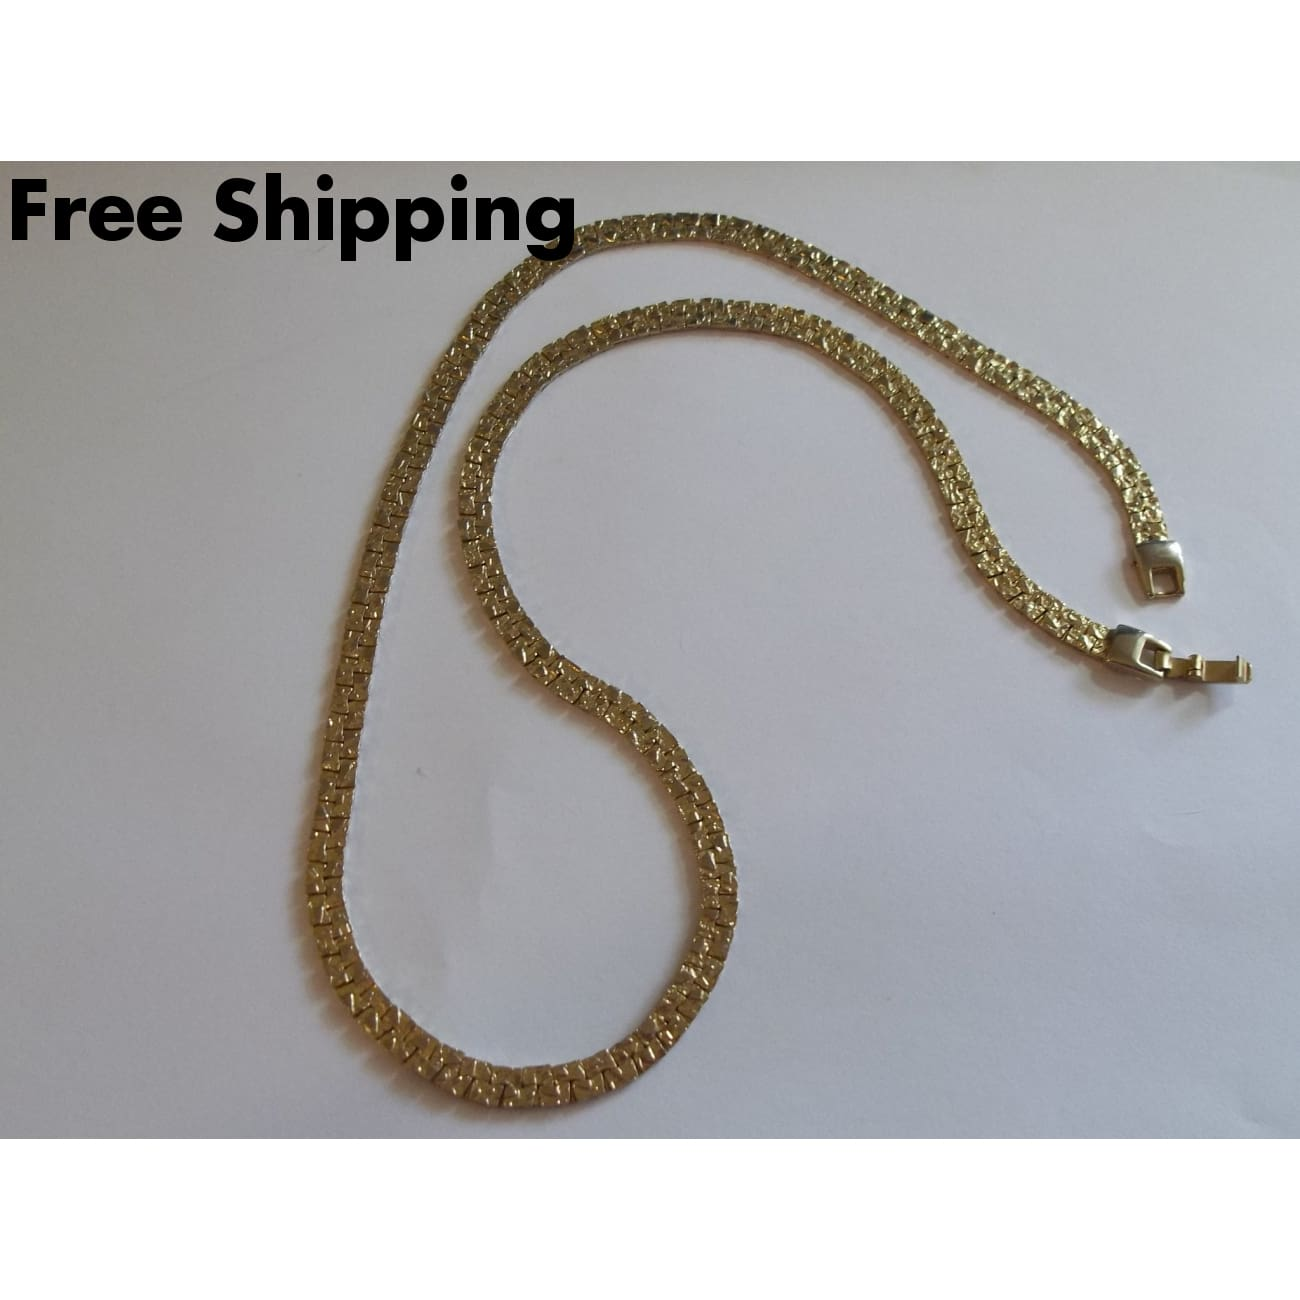 Vintage Unisex Mens Womens Gold Nugget Link Gold Tone 24 Necklace - Vintage Handcrafted Artisan